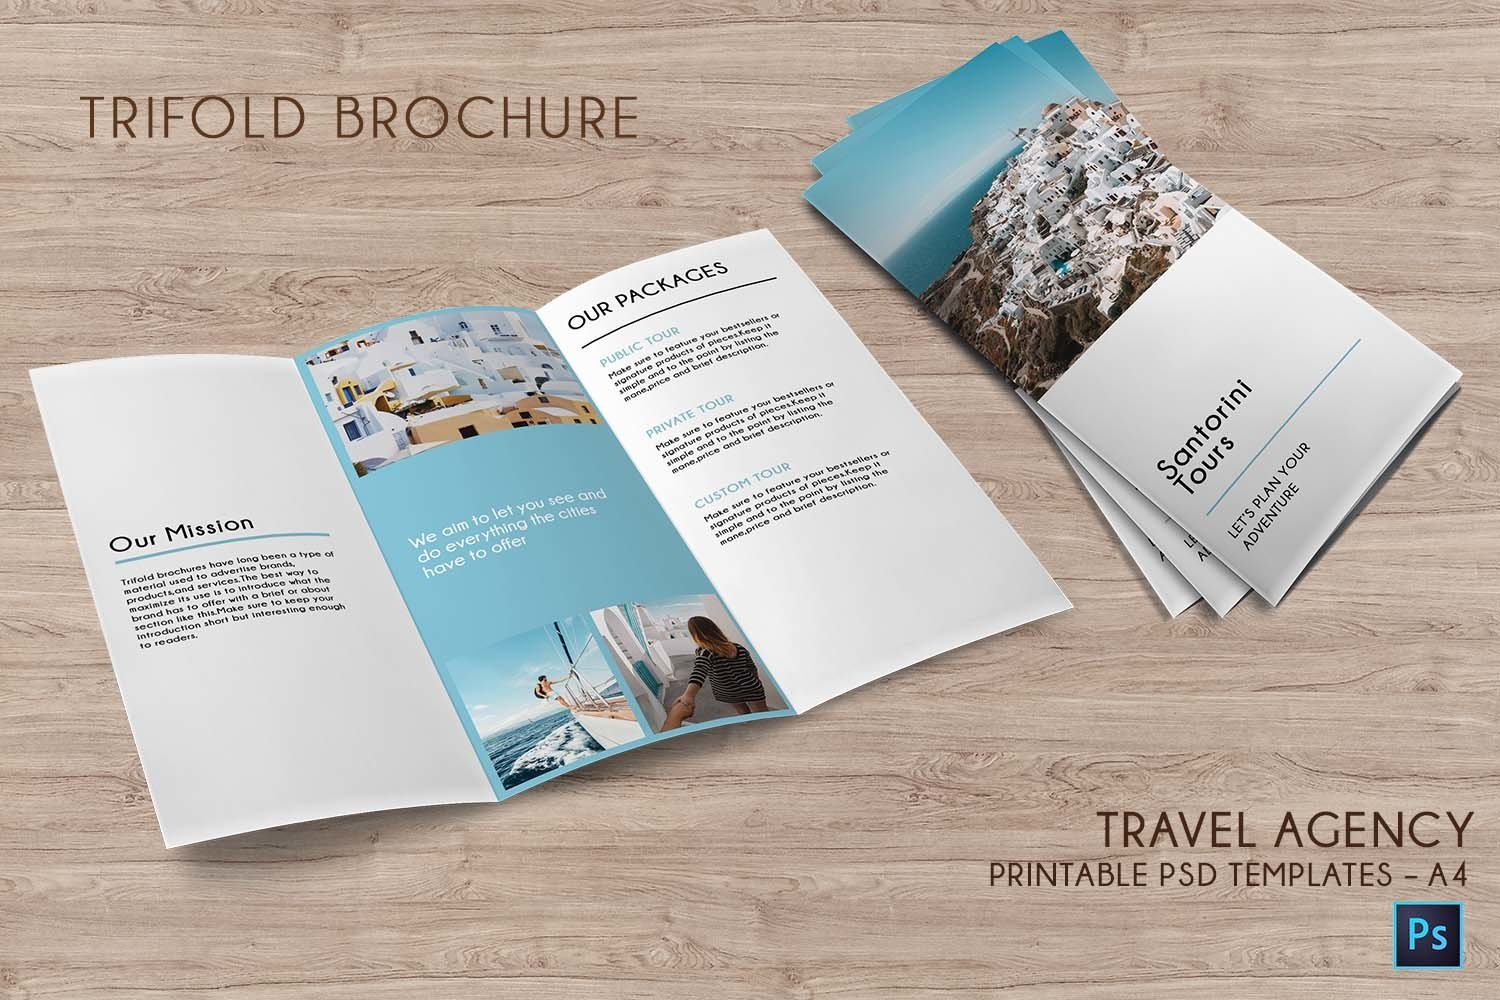 Trifold Agency Travel Brochure Editable PSD Templates example image 1